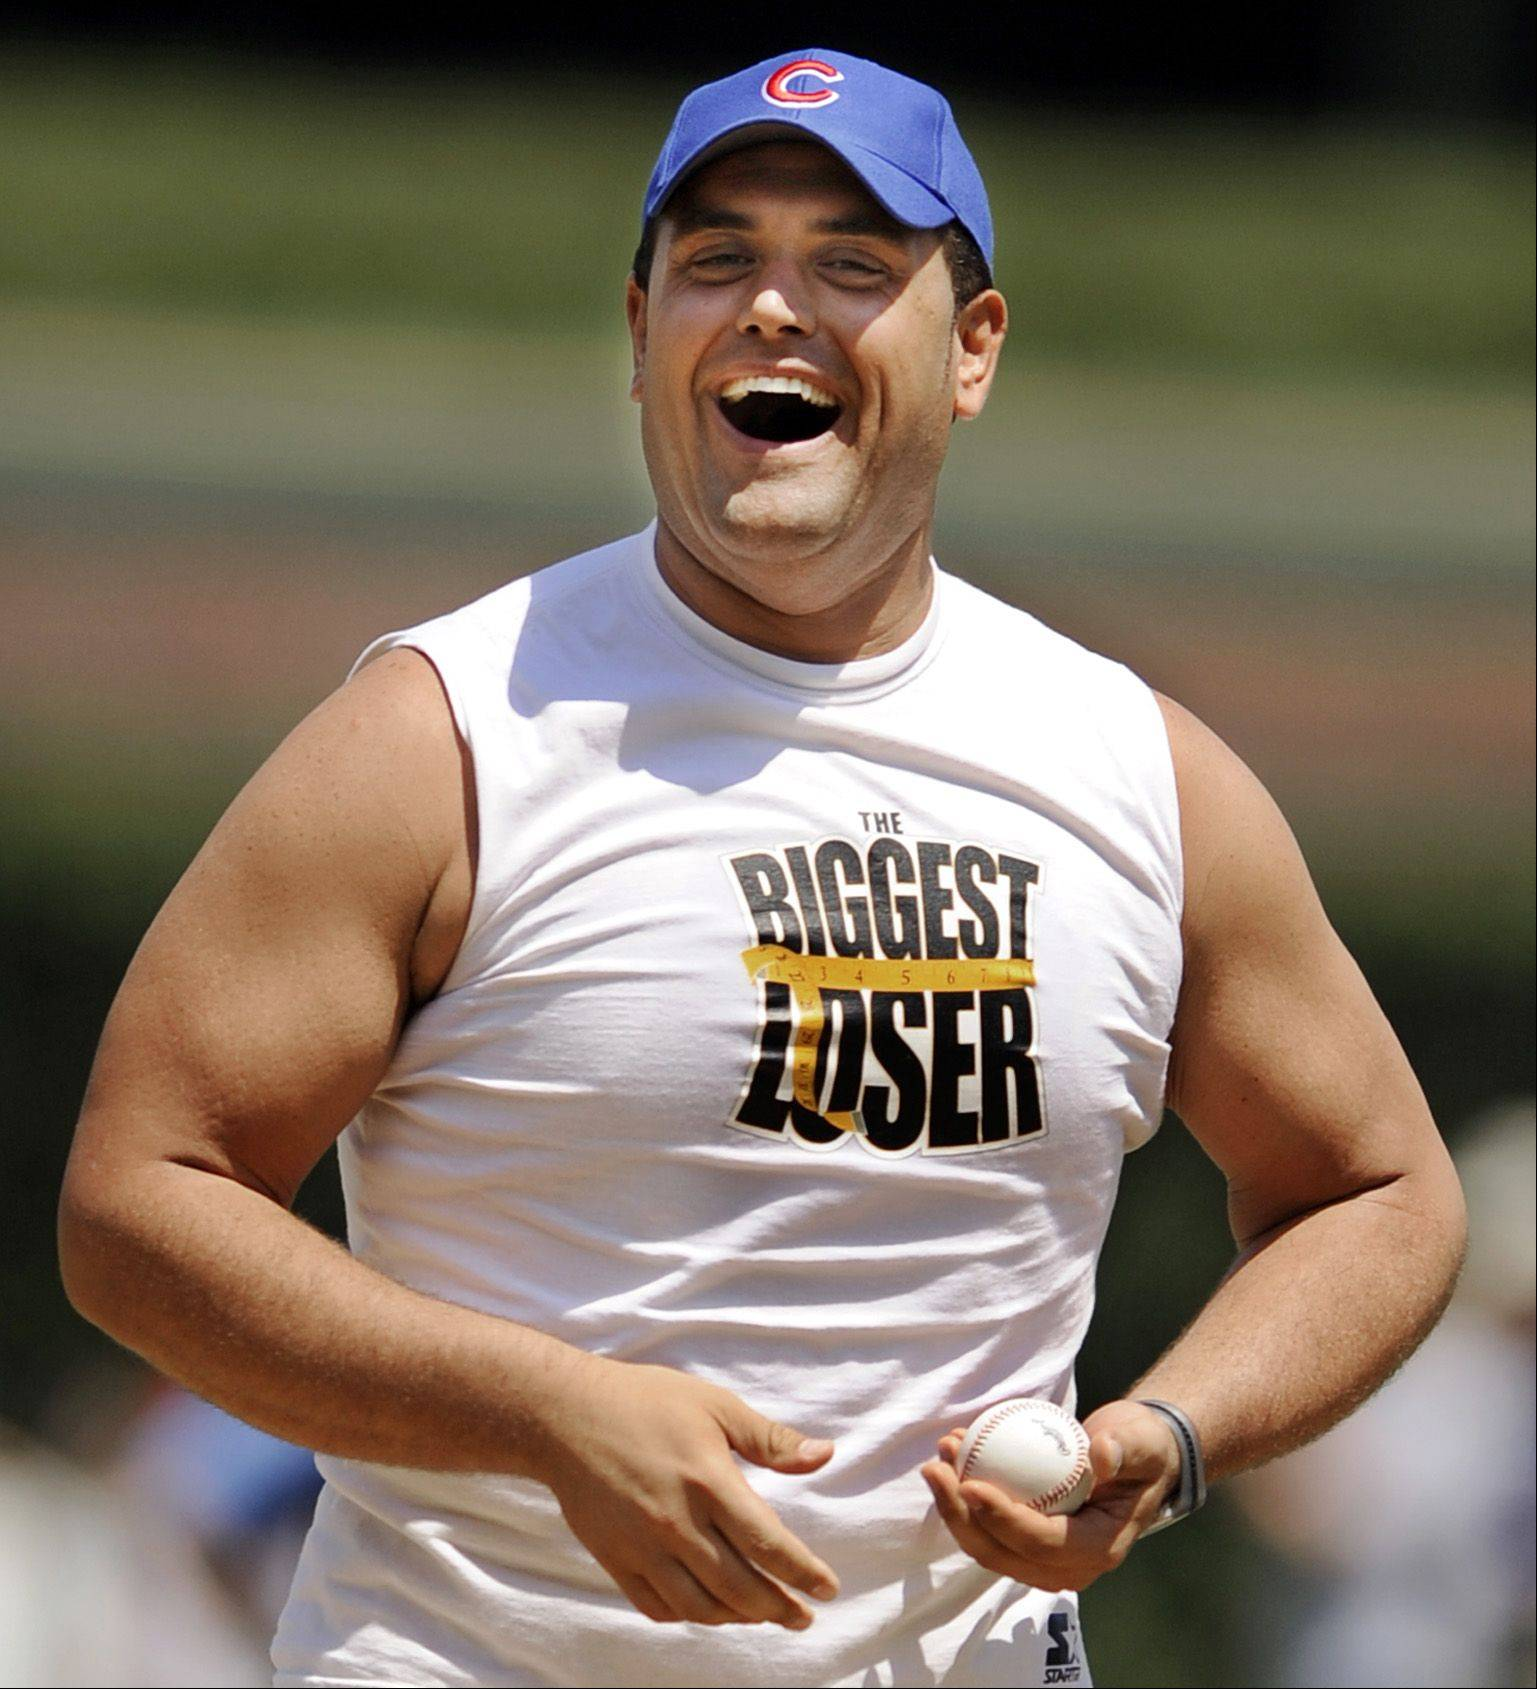 """The Biggest Loser"" winner Michael Ventrella, of Bartlett, seen here throwing out the first pitch at a 2010 Chicago Cubs game, said he can't wait to check out the new The Biggest Loser resort in Itasca."